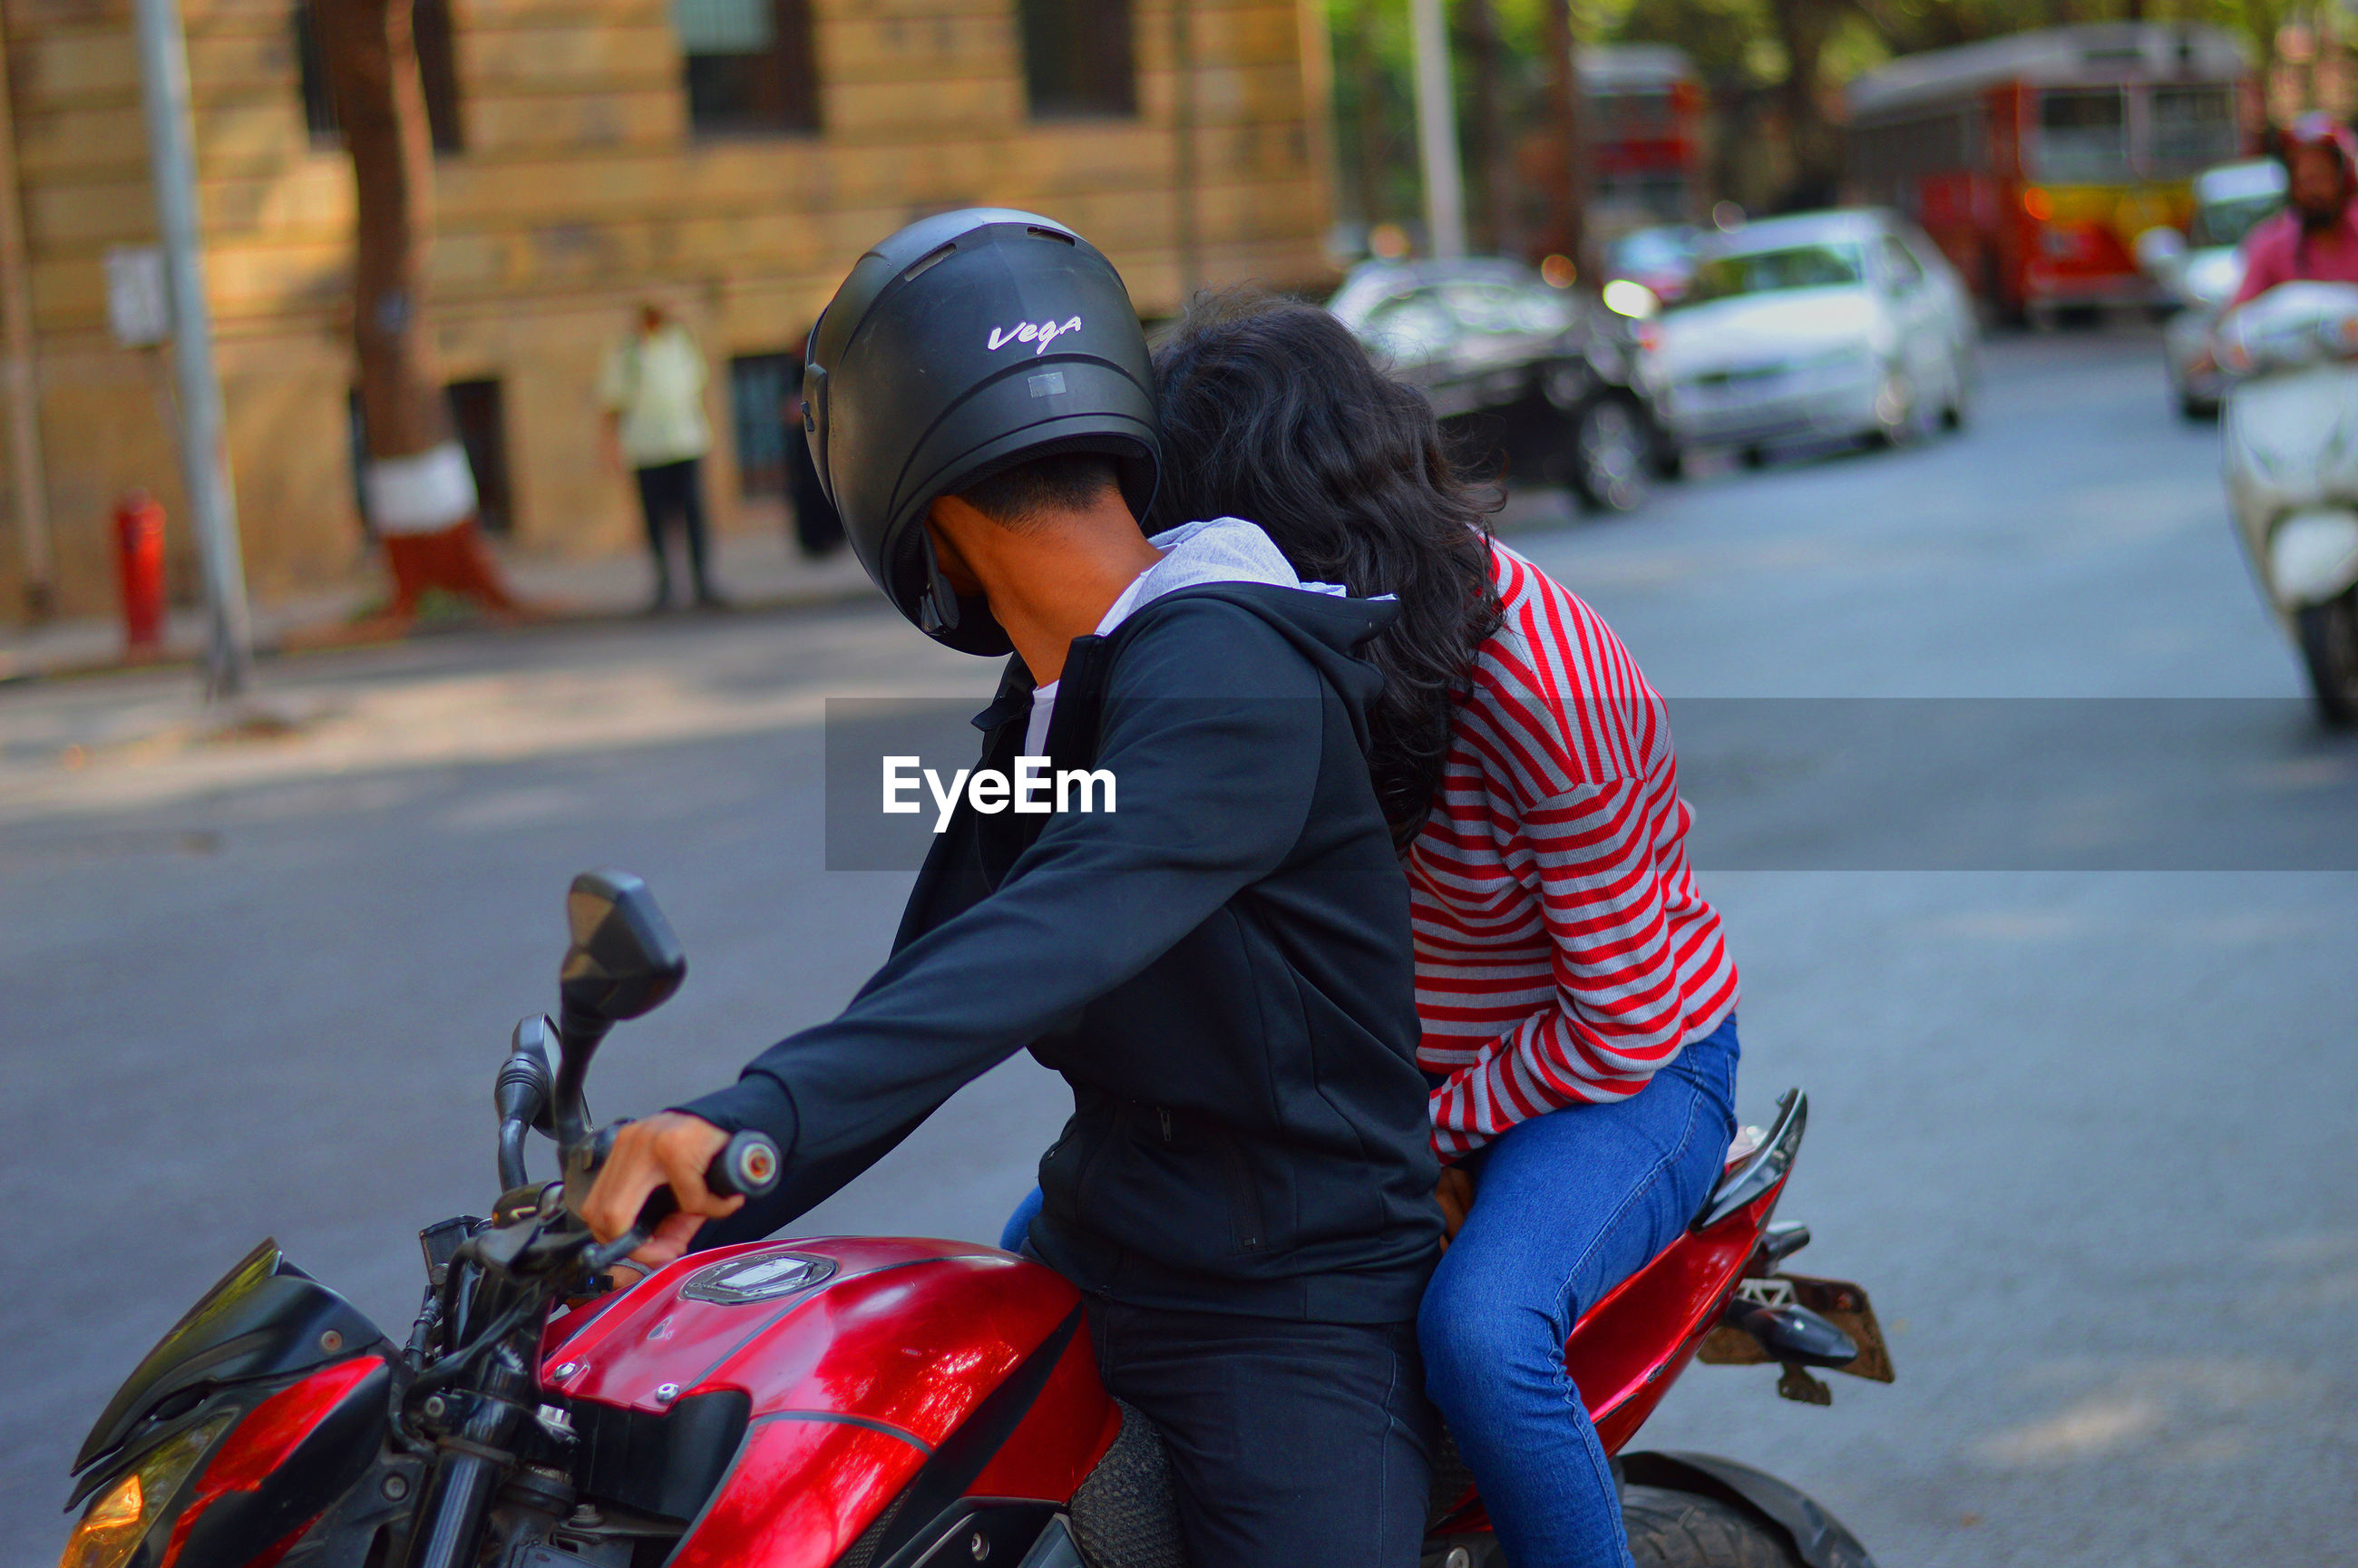 Couple sitting on motorcycle in city